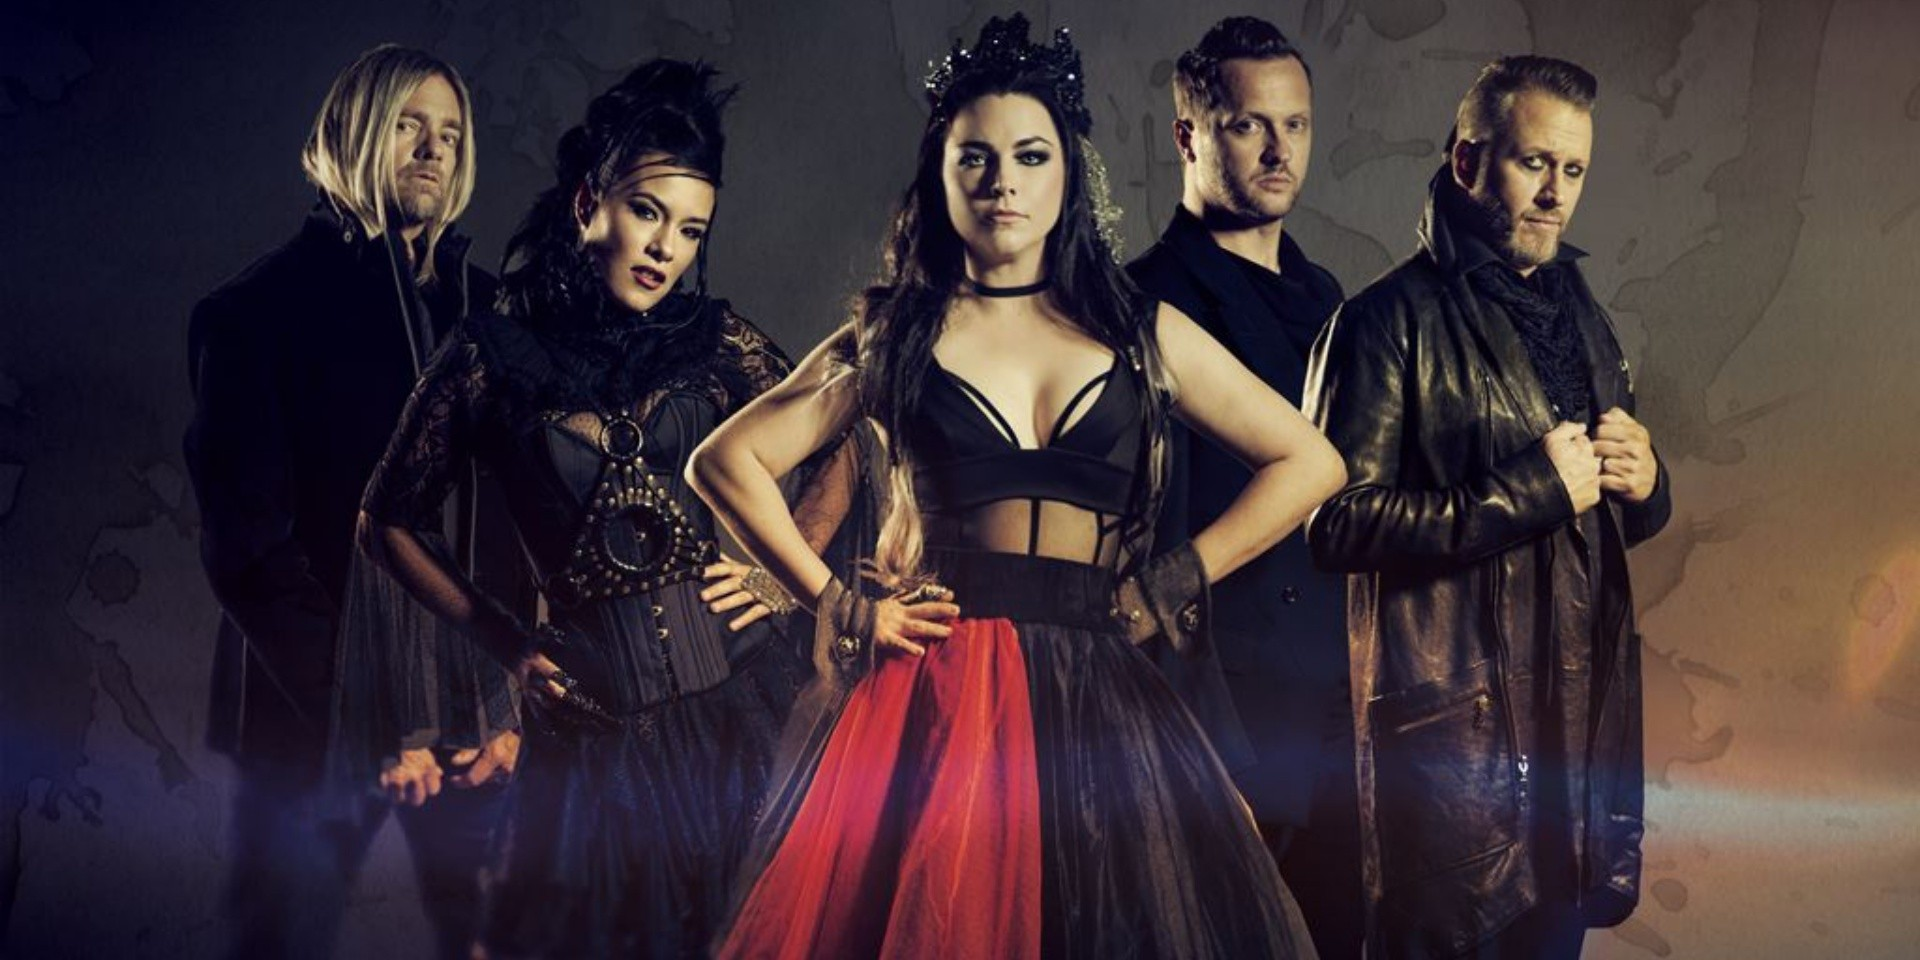 Amy Lee confirms Evanescence is working on new album